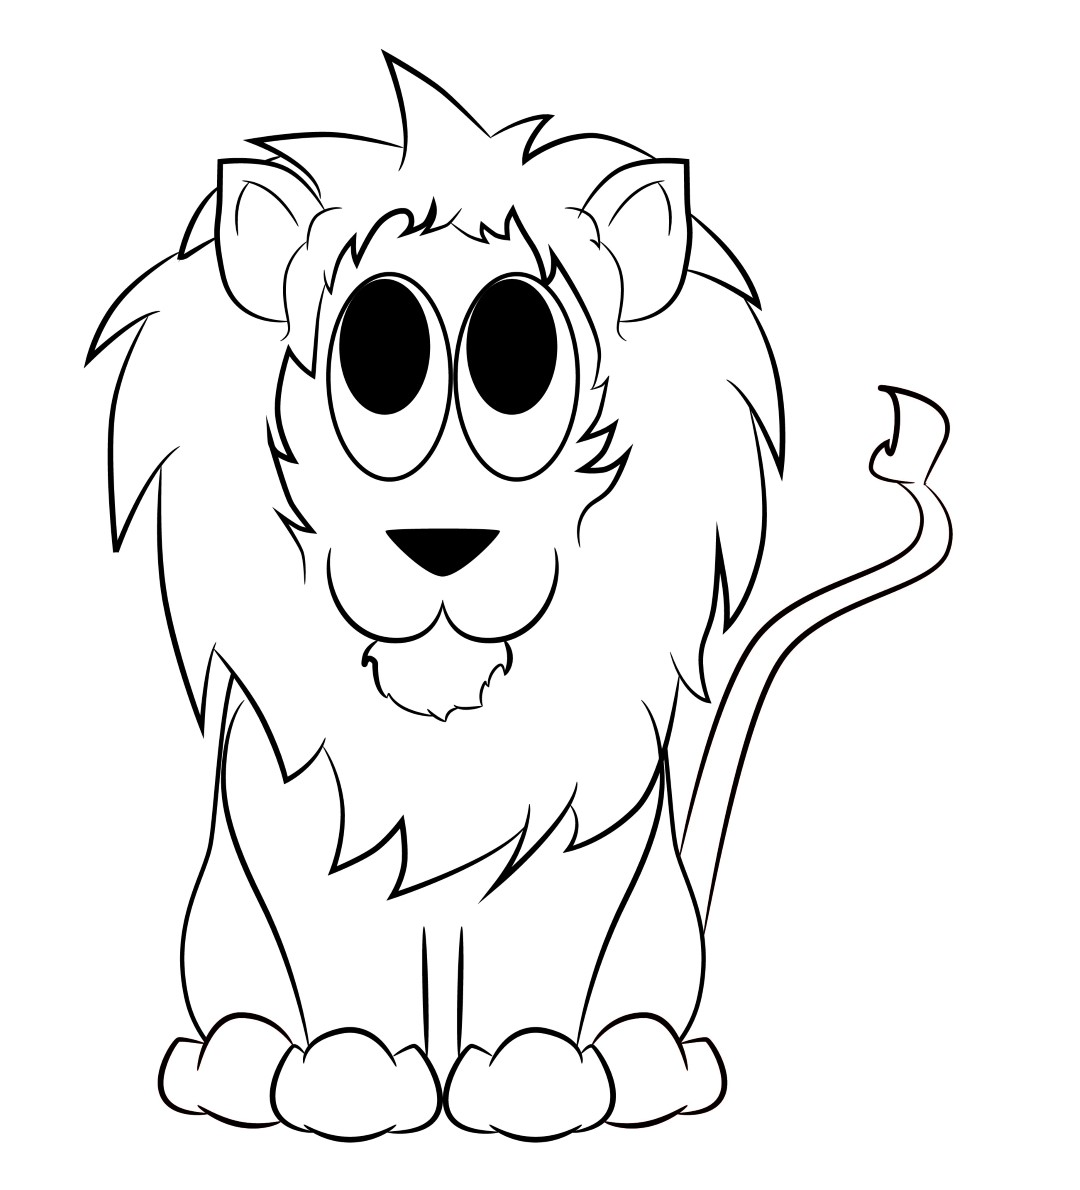 Lion Girl Drawing at GetDrawings.com | Free for personal use Lion ...